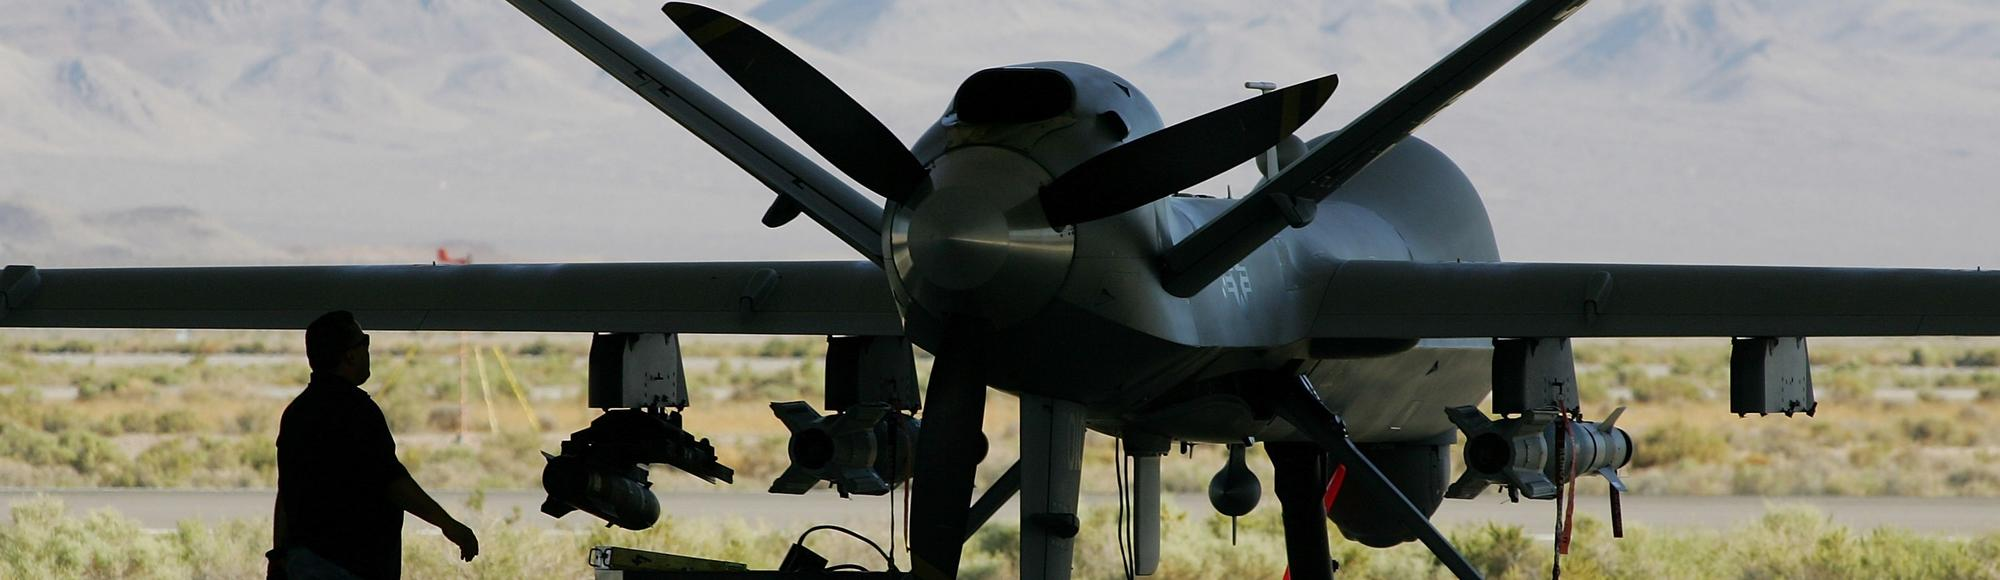 The US Has Issued New Rules For the Foreign Sale of Military Drones